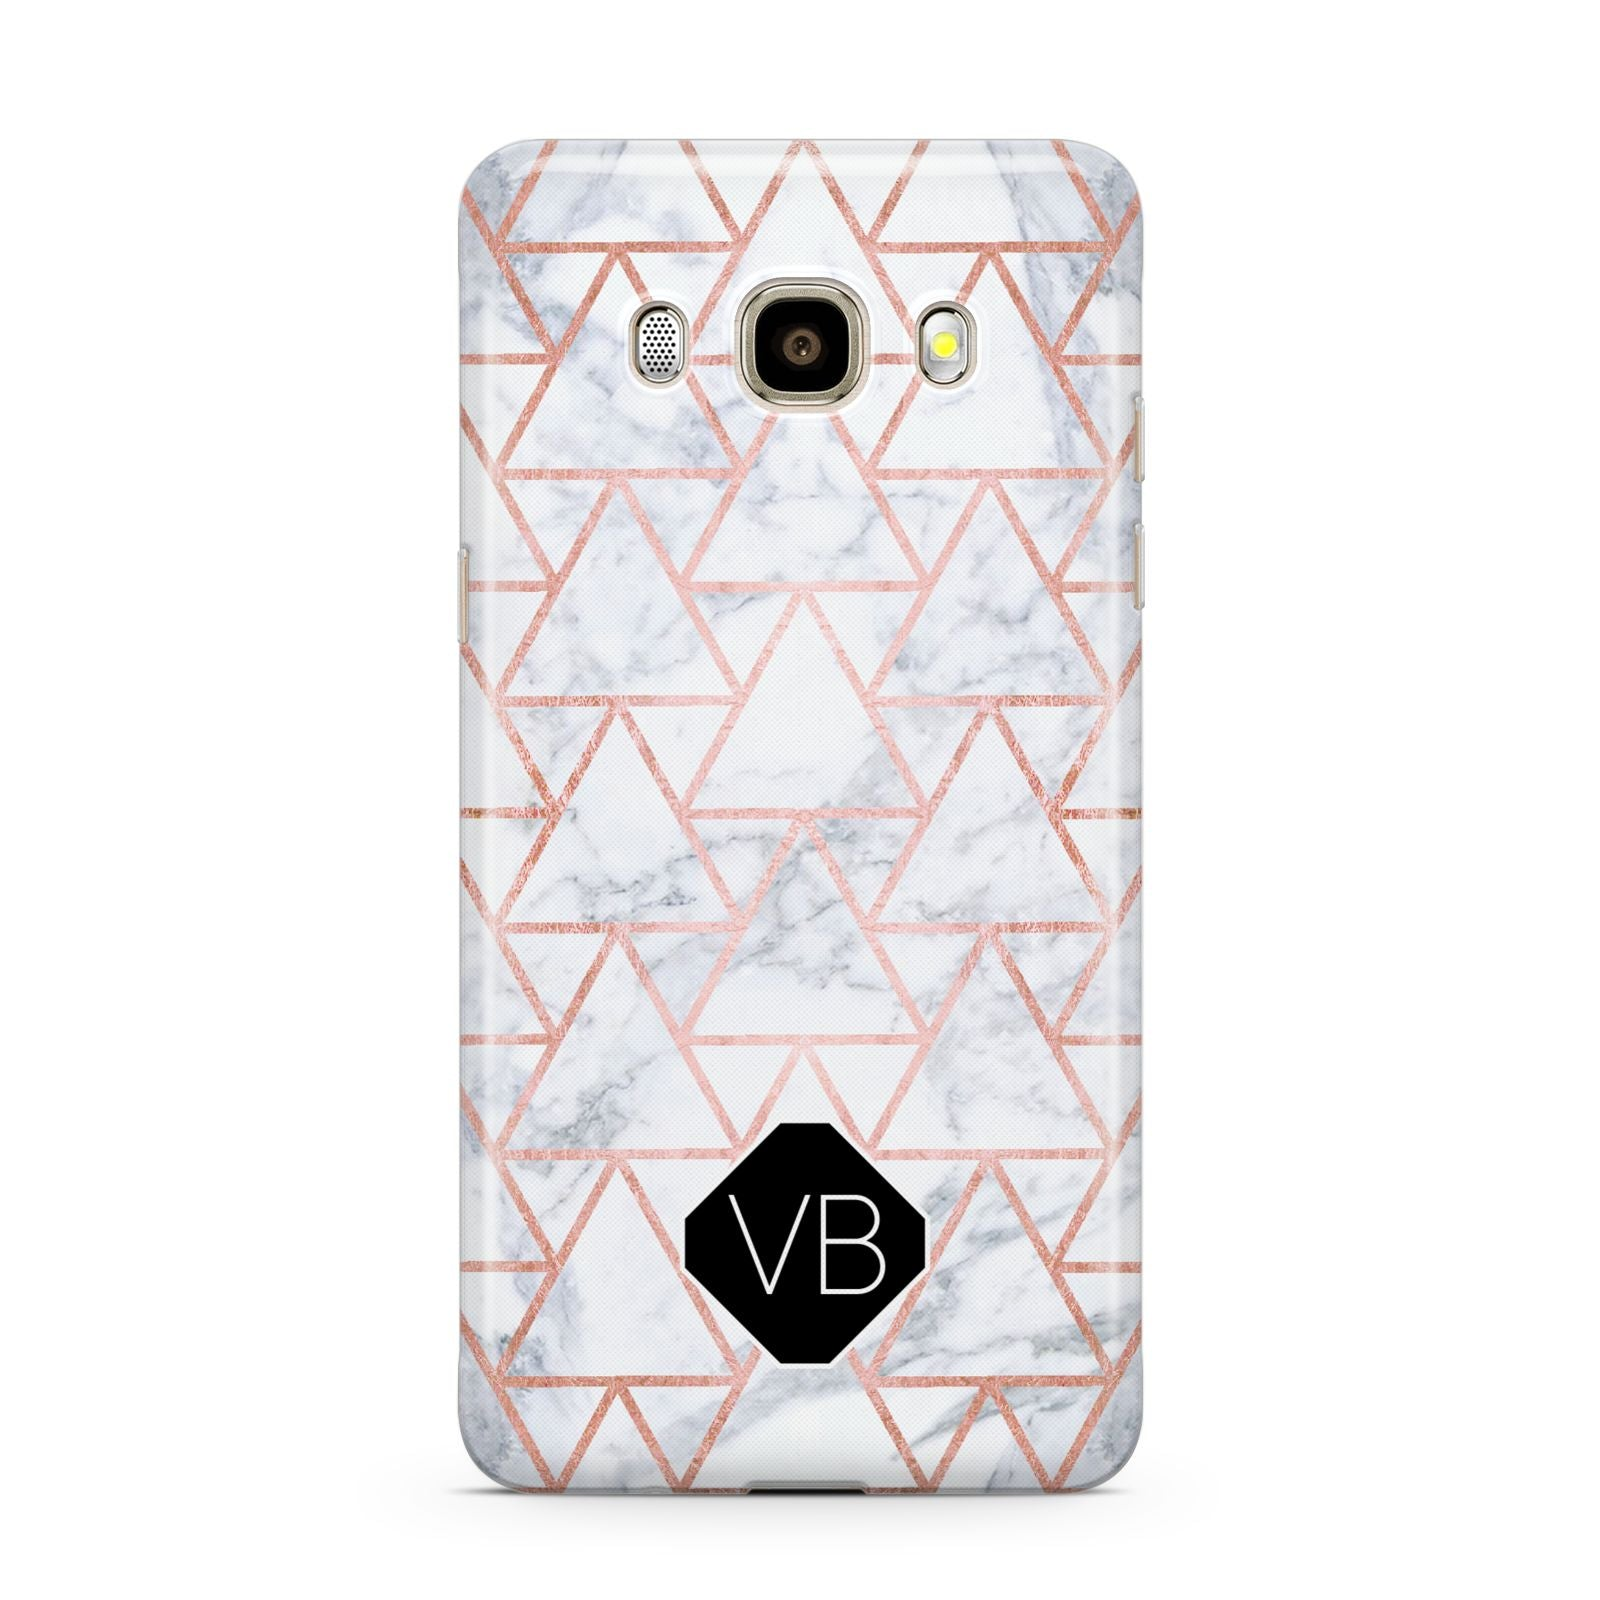 Personalised Rose Gold Grey Marble Hexagon Samsung Galaxy J7 2016 Case on gold phone